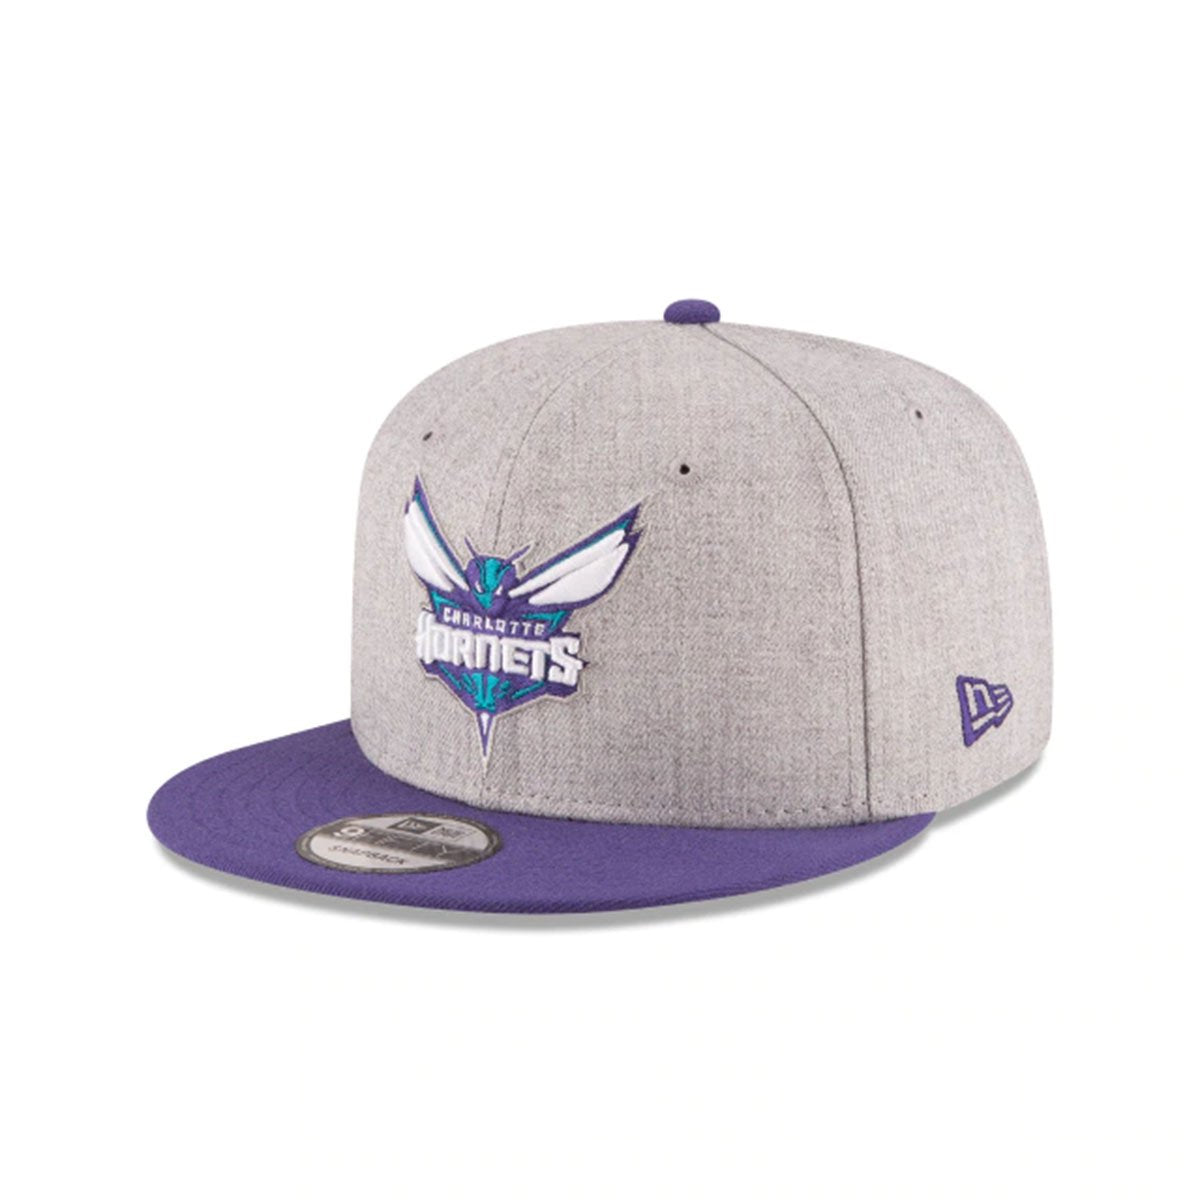 CHARLOTTE HORNETS 2TONE HGROTC_HEATHER/PURPLE